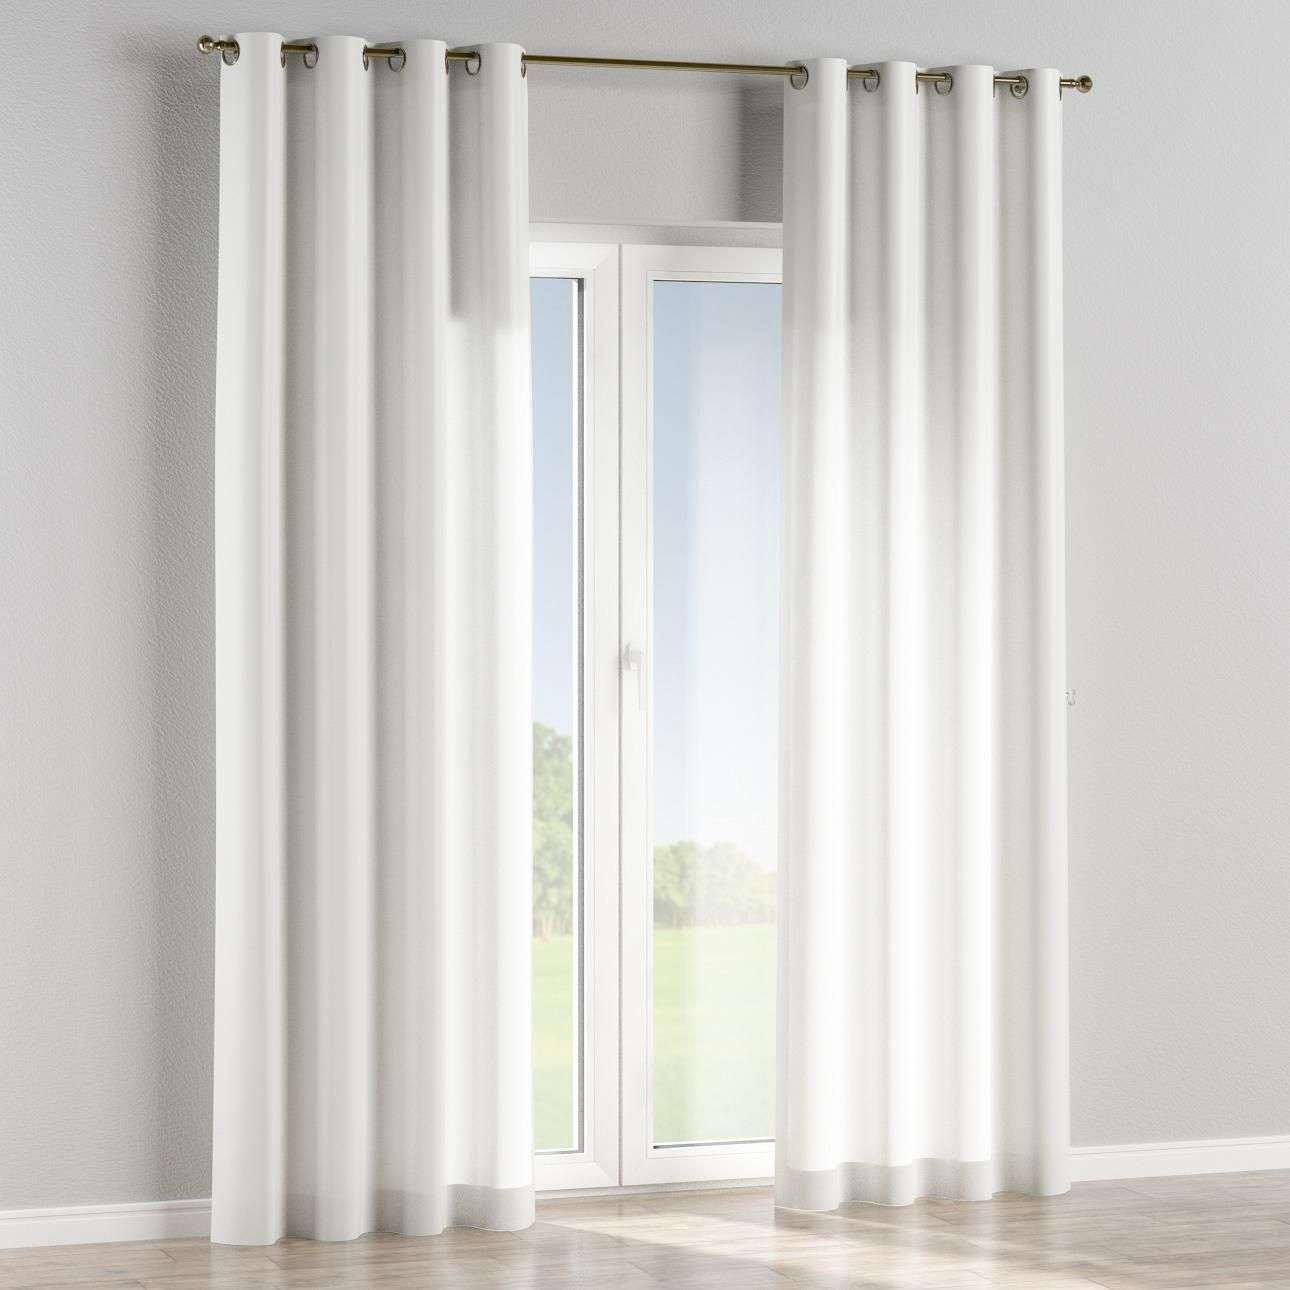 Eyelet curtains in collection Rustica, fabric: 138-16